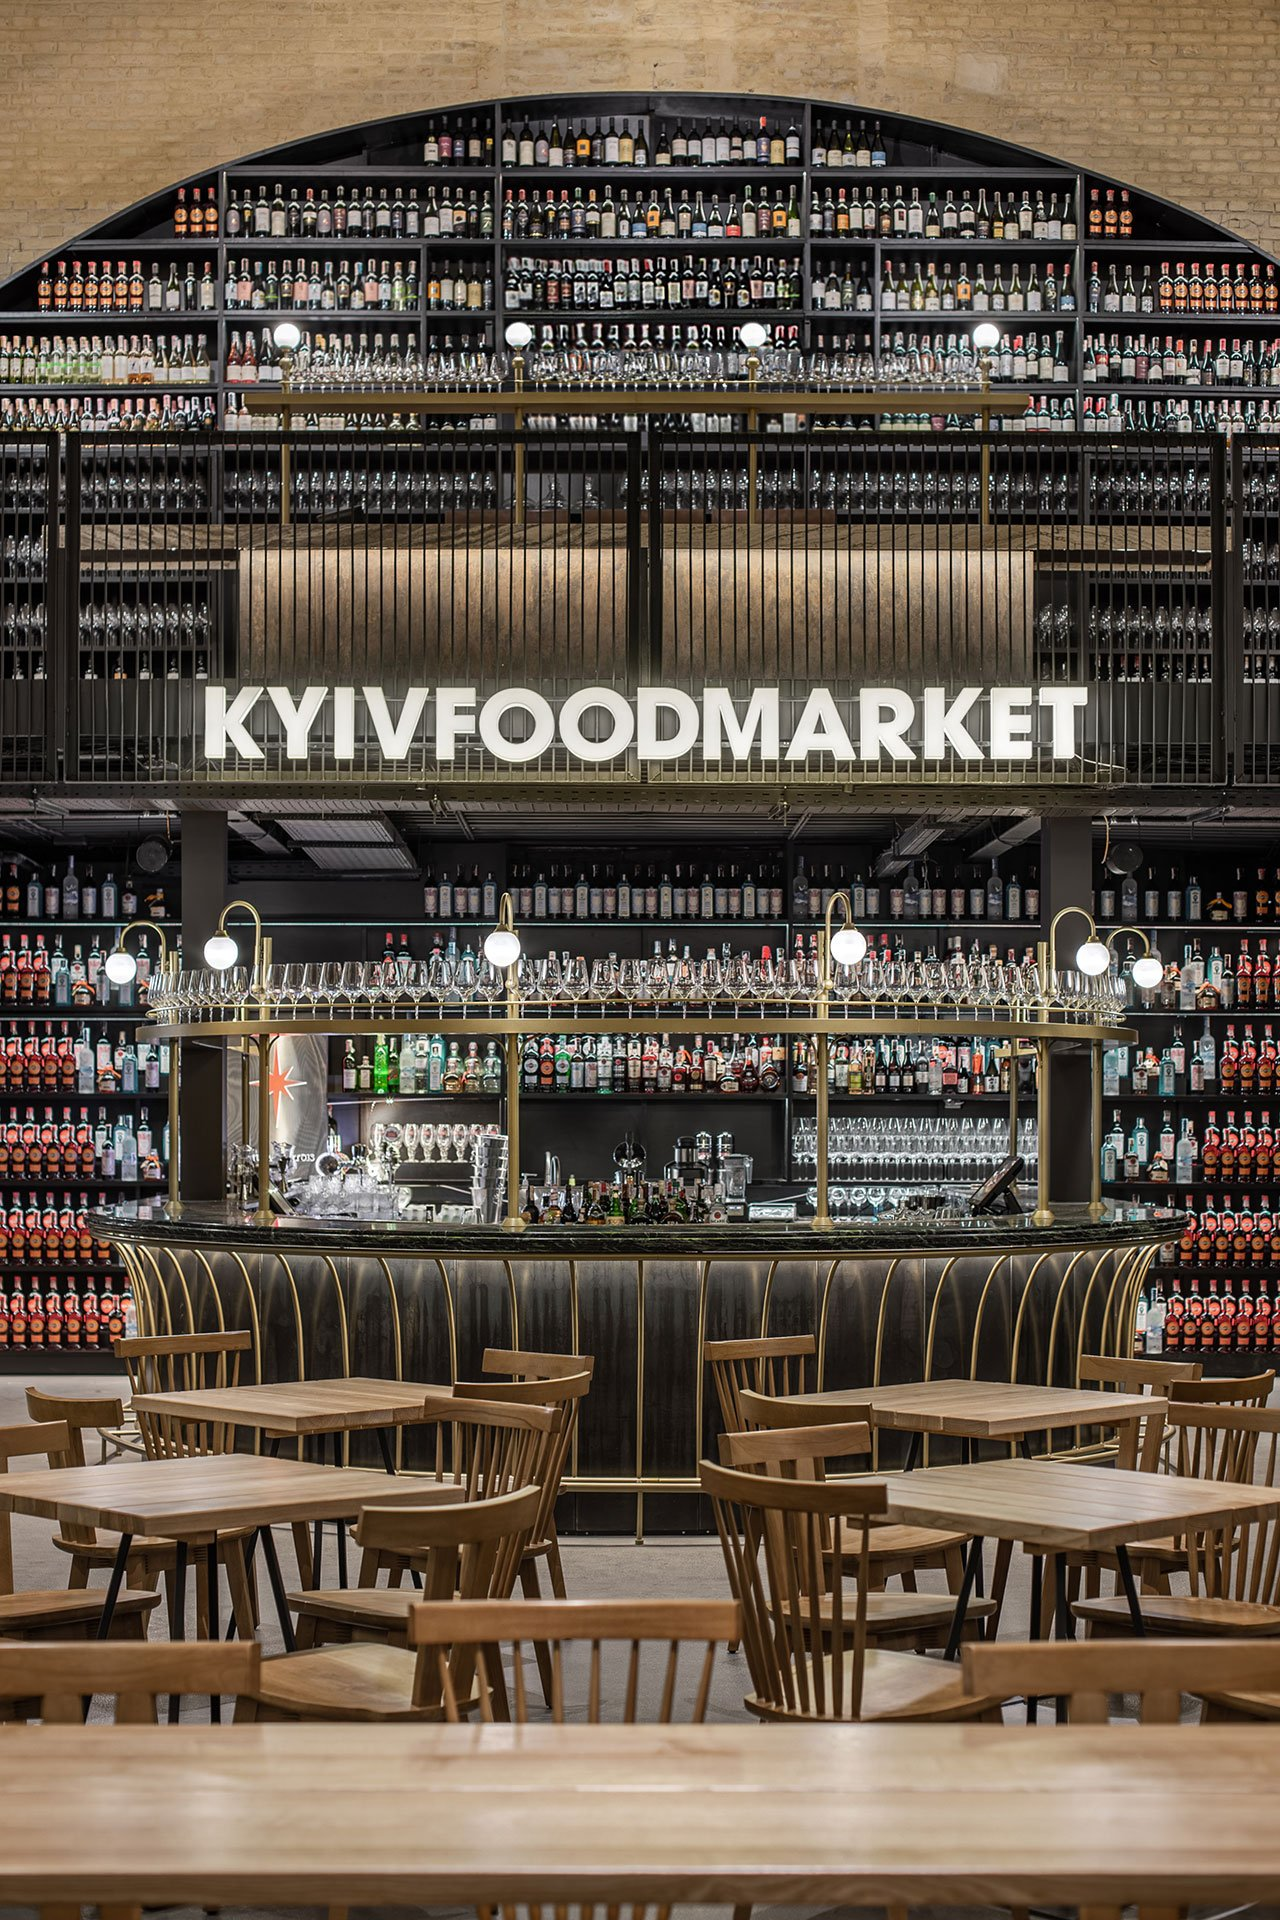 Kyiv Food Market by balbek bureau. Photo by Yevhenii Avramenko.